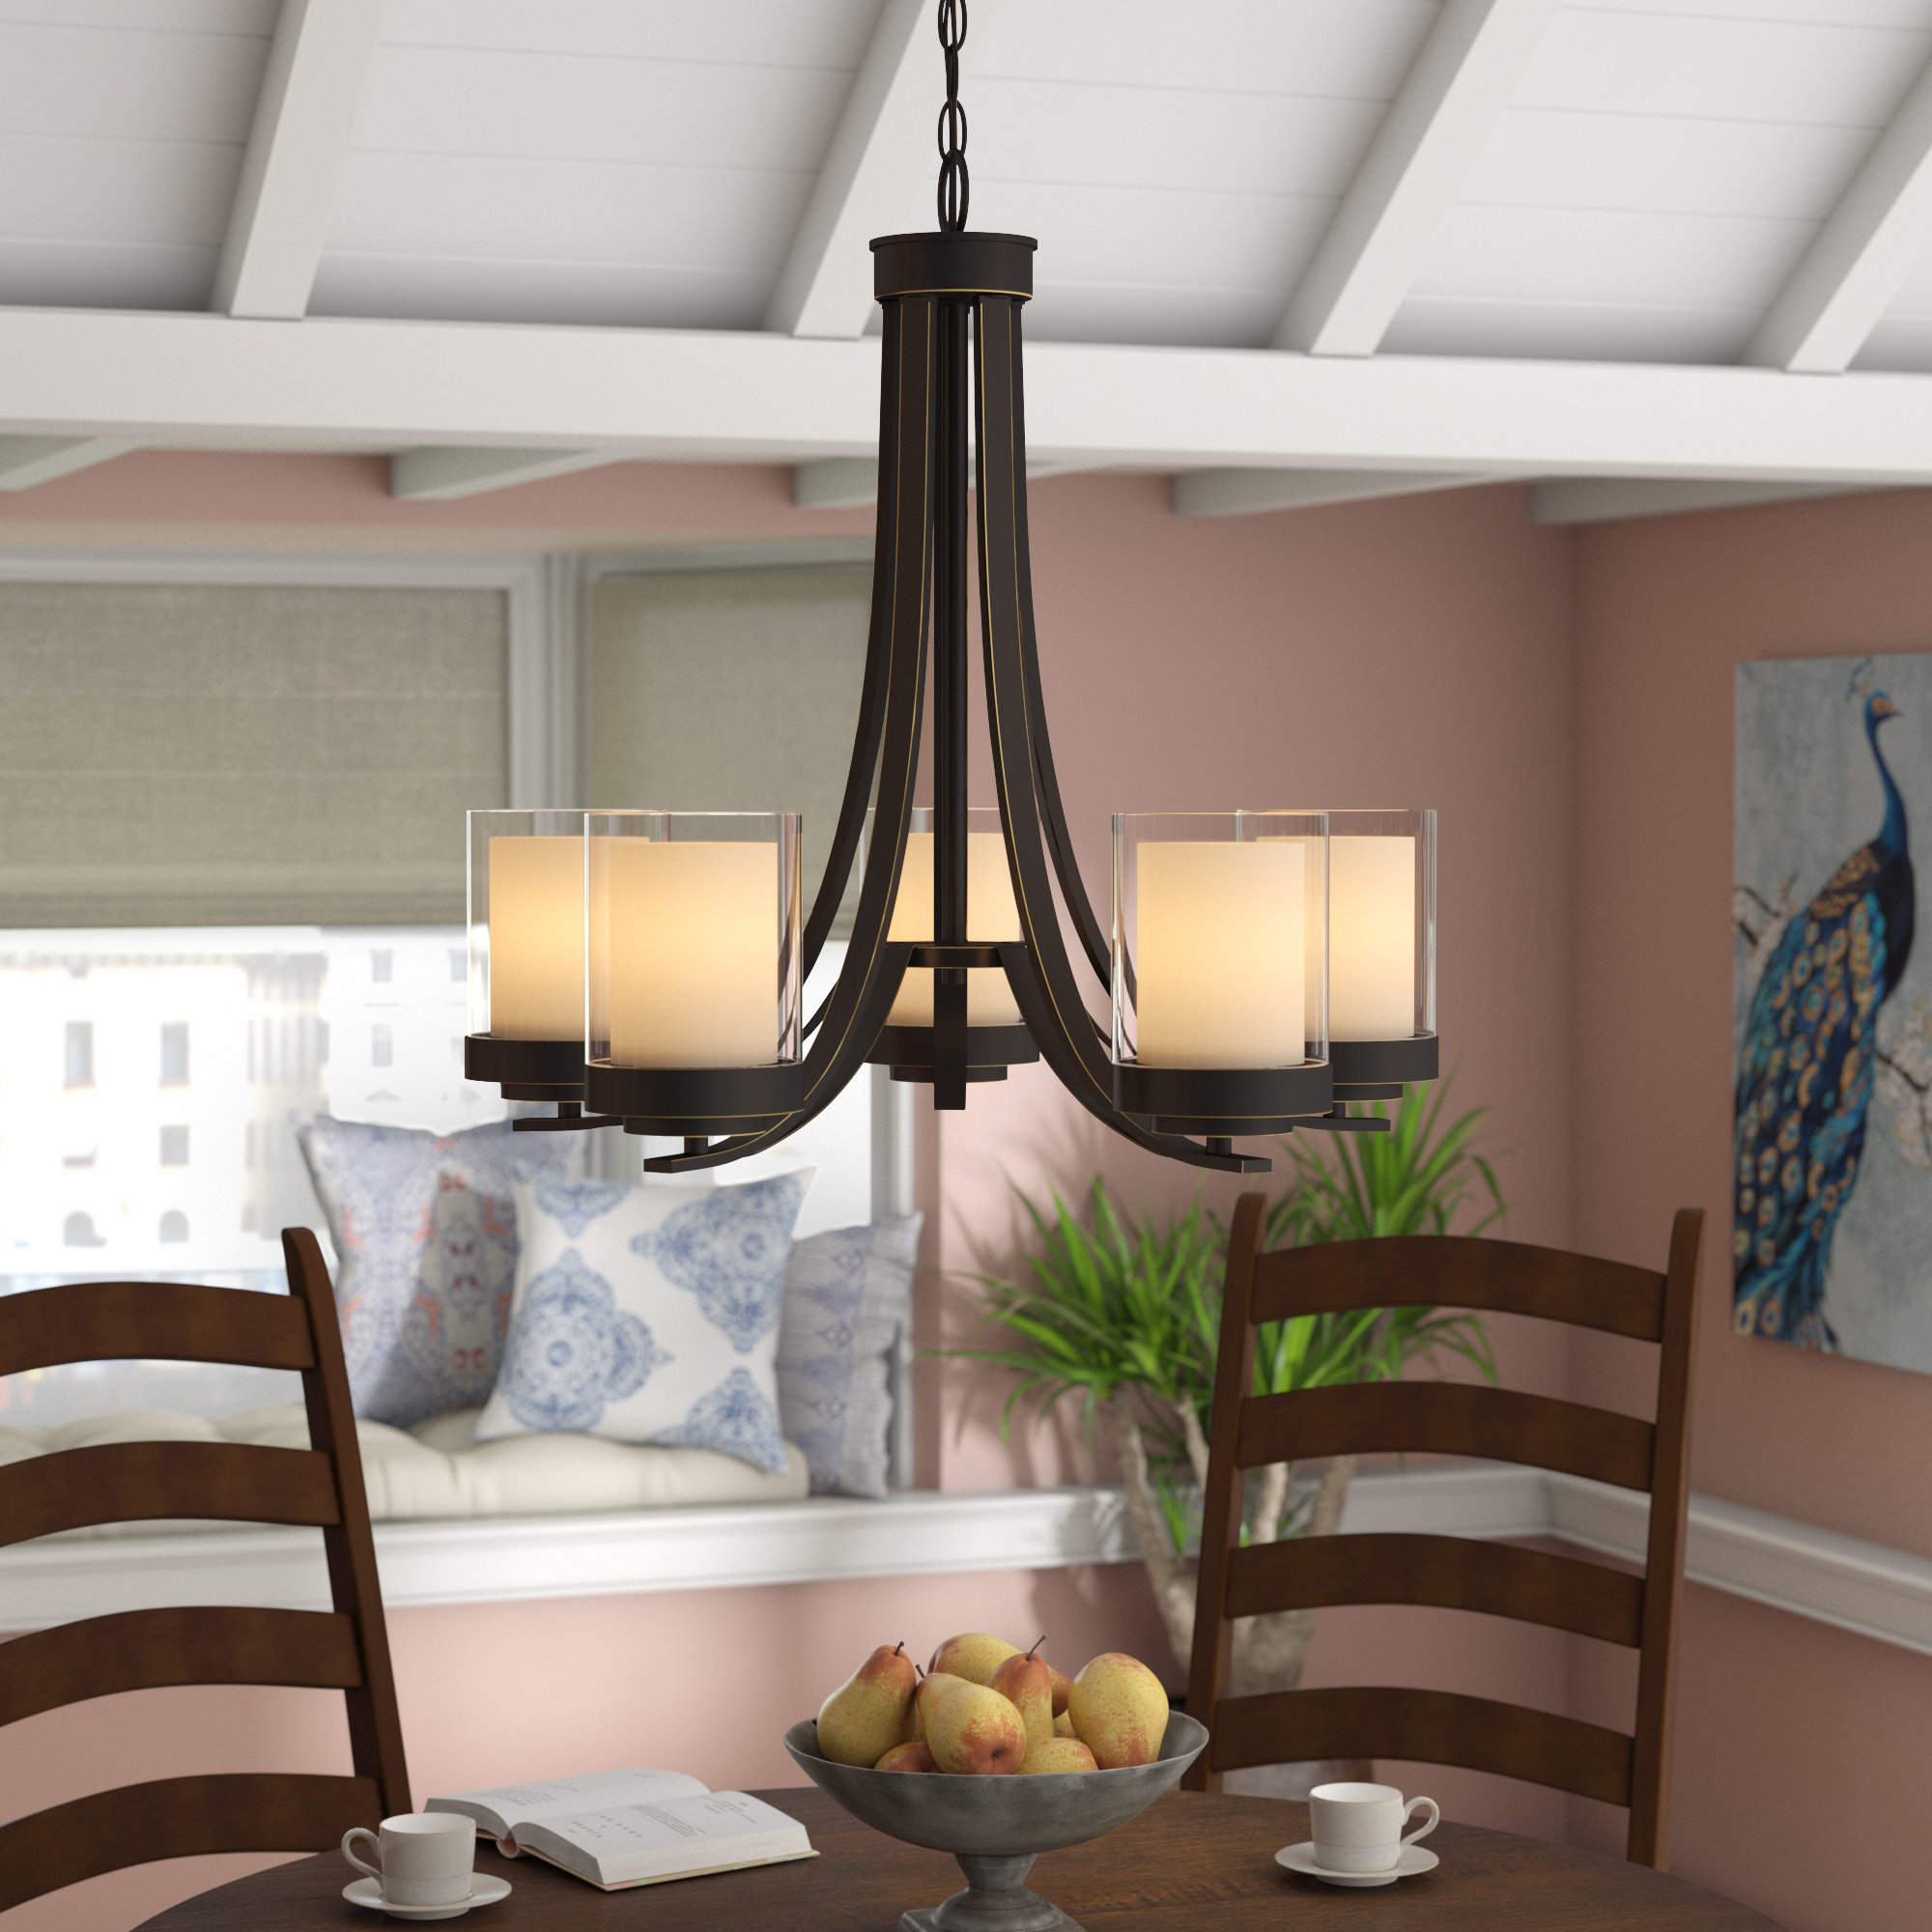 Gaines 5 Light Shaded Chandeliers Throughout Well Known Suki 5 Light Shaded Chandelier (Gallery 15 of 20)